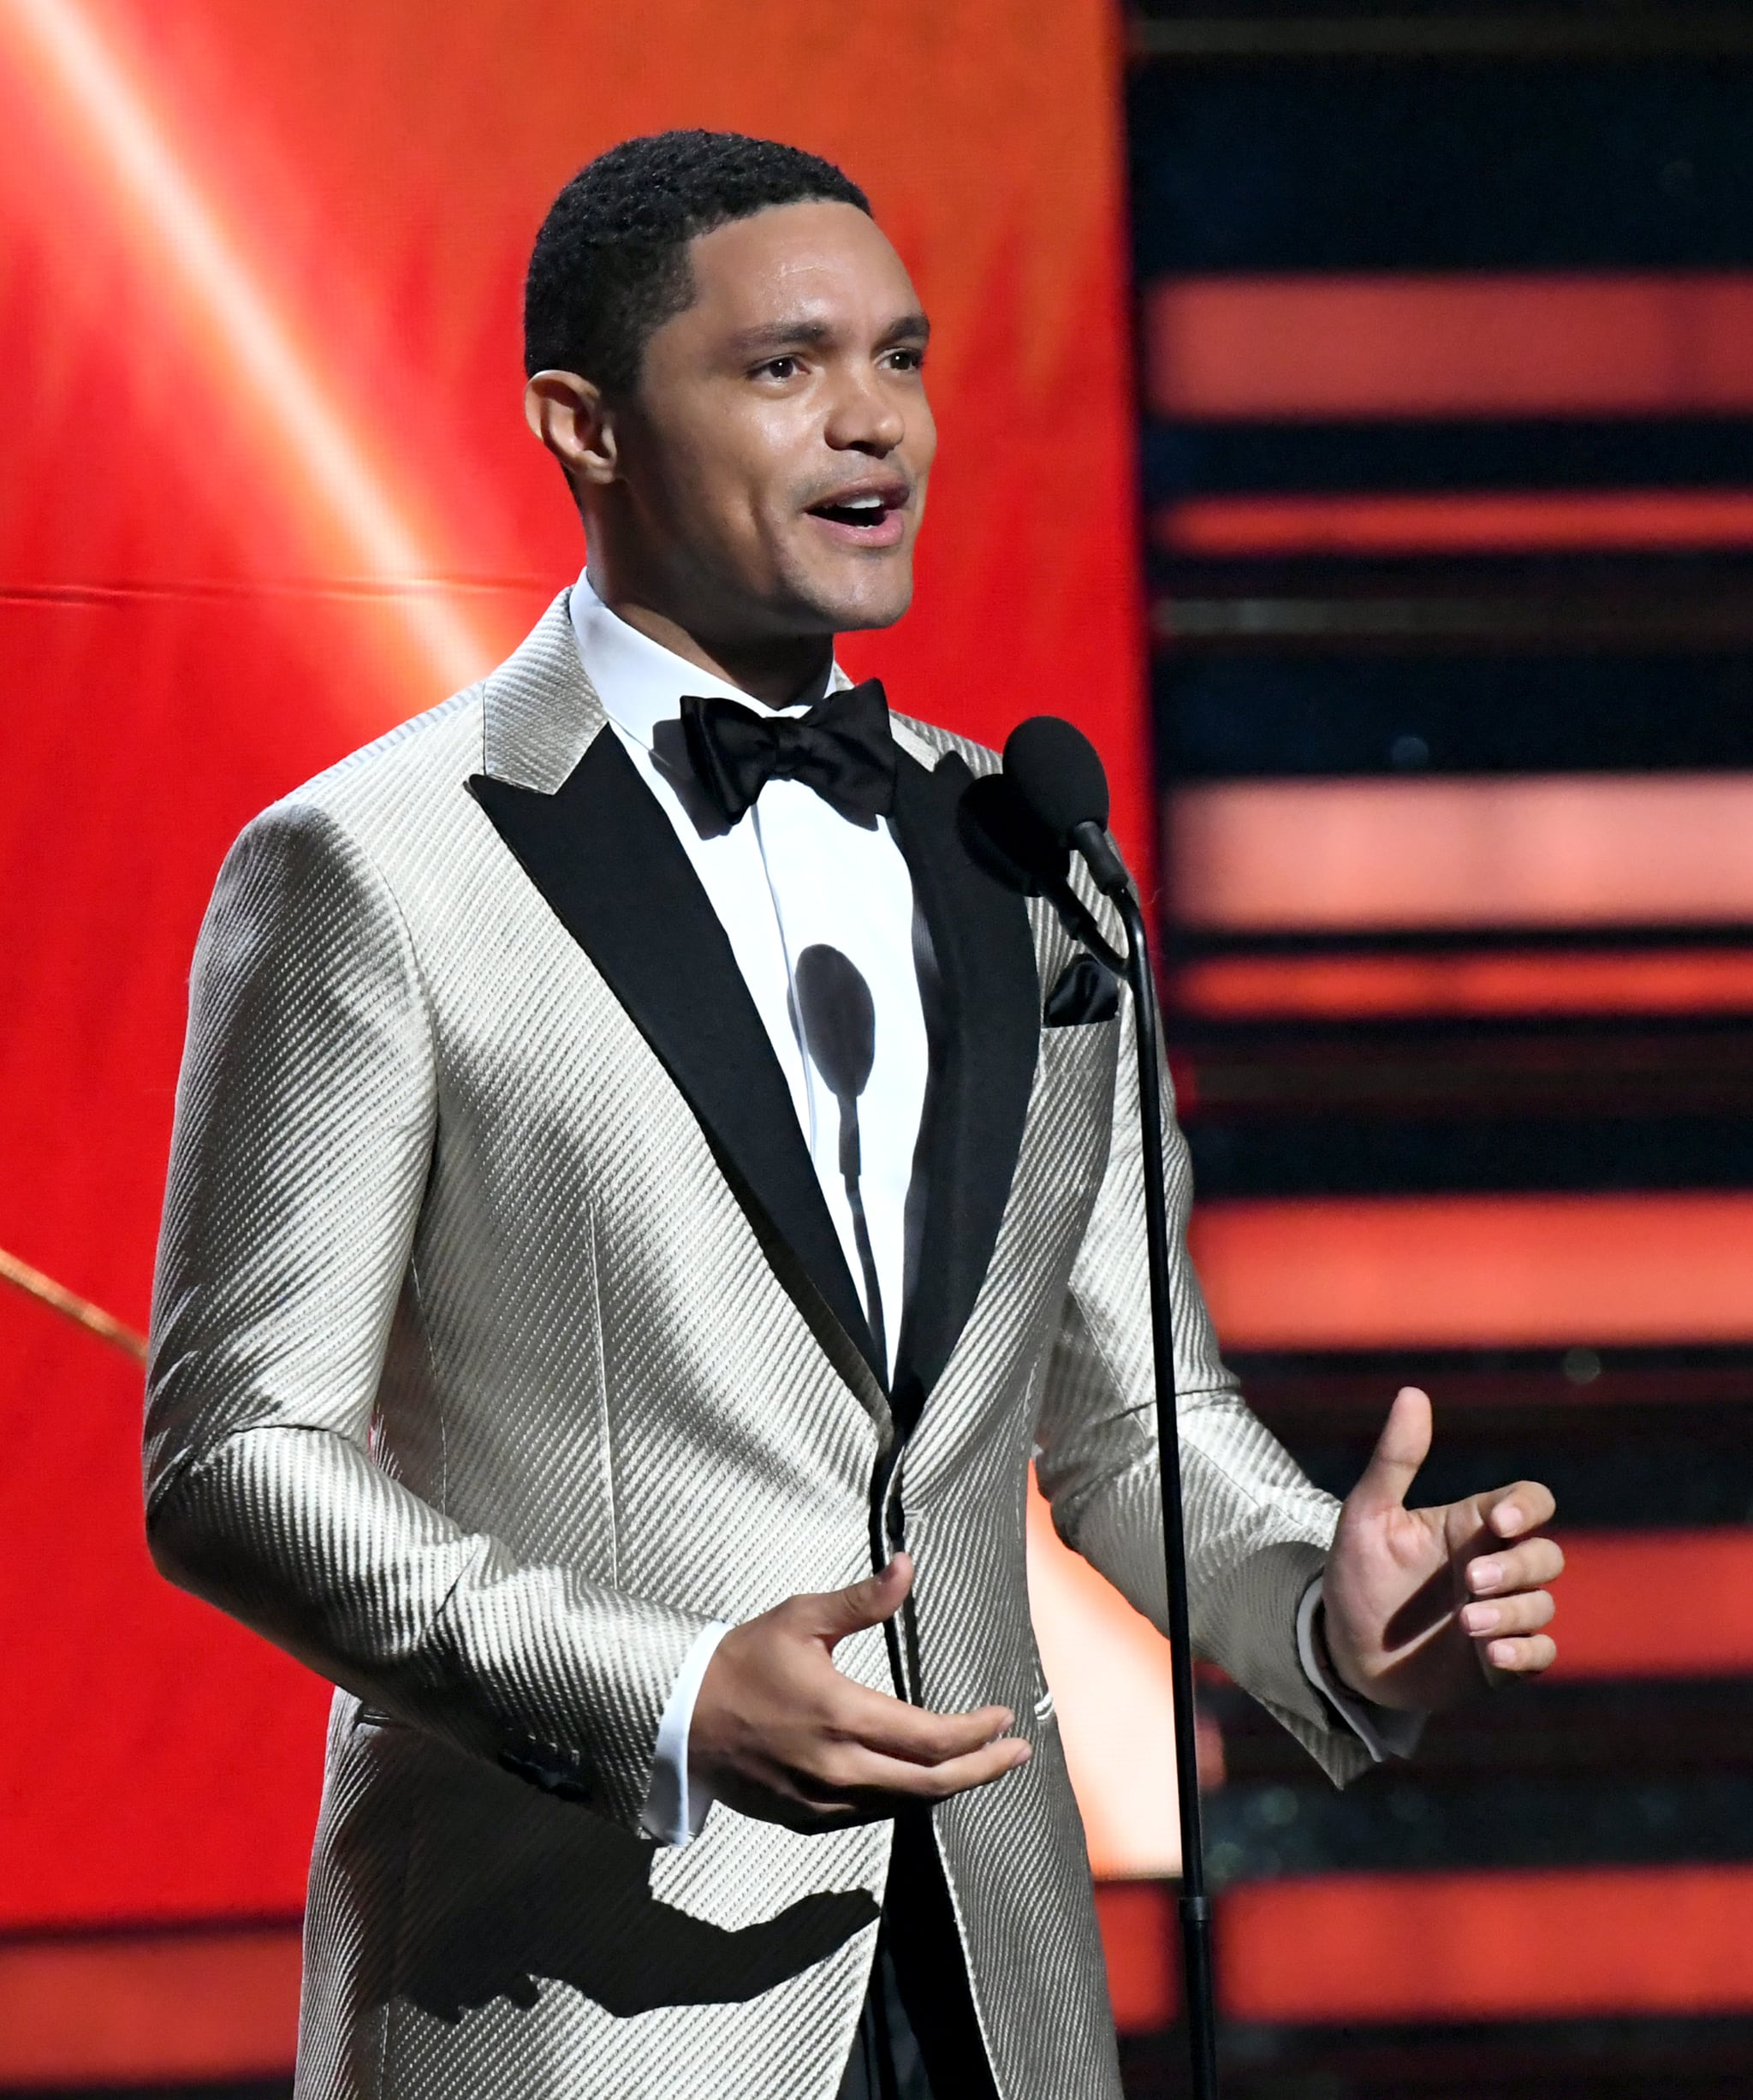 LOS ANGELES, CALIFORNIA - JANUARY 26: Trevor Noah speaks onstage during the 62nd Annual GRAMMY Awards at Staples Centre on January 26, 2020 in Los Angeles, California. (Photo by Jeff Kravitz/FilmMagic)